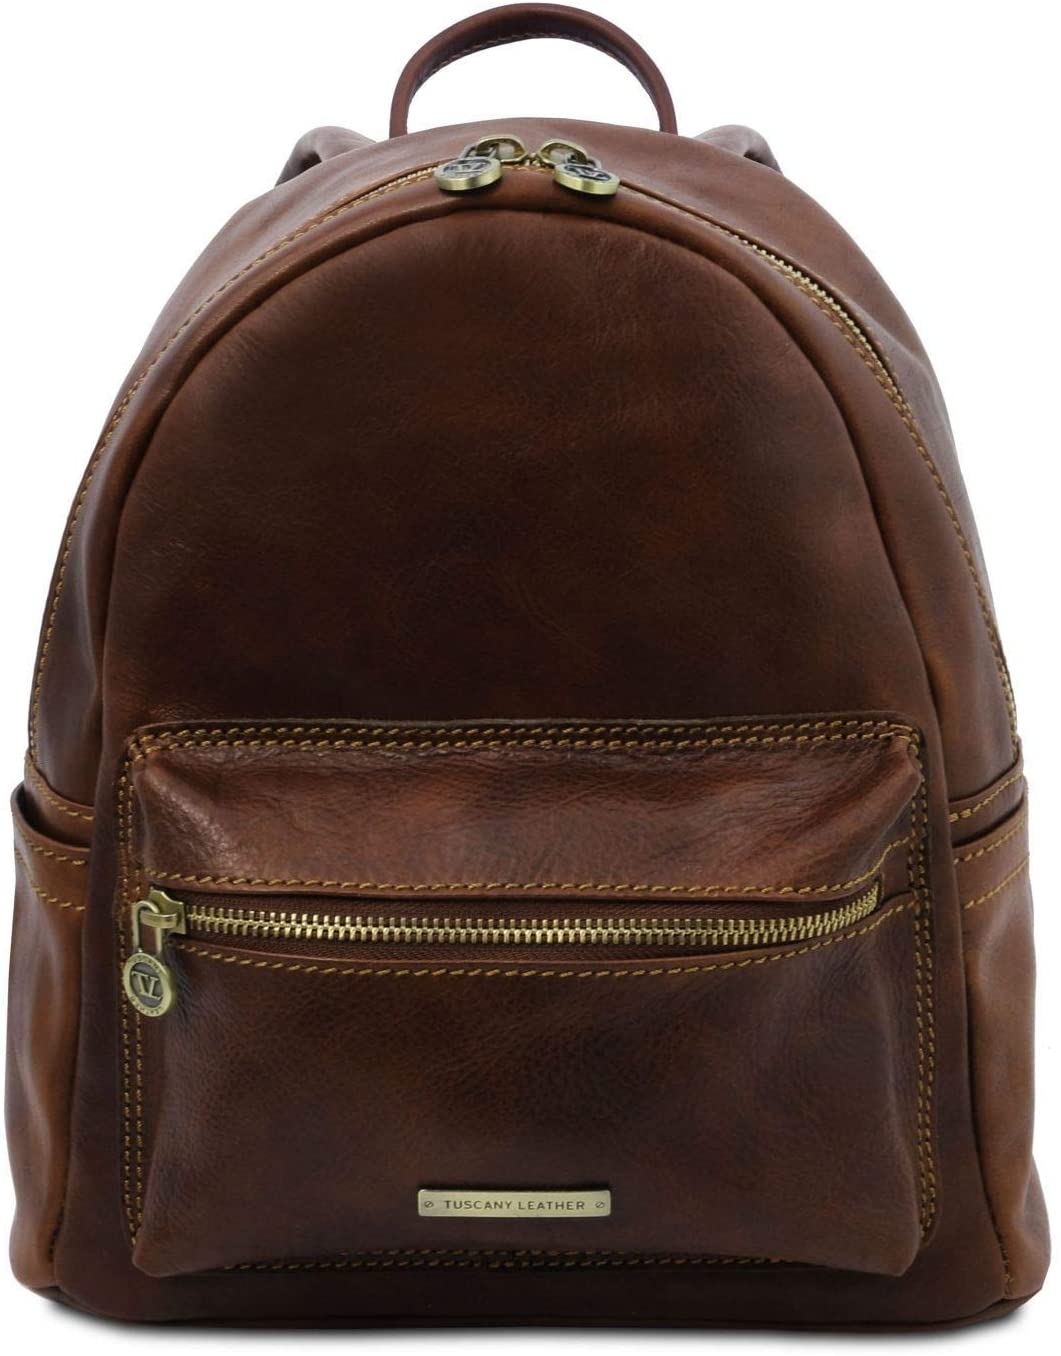 Tuscany Leather - Sydney - Leather backpack - TL141979 (Dark Brown)